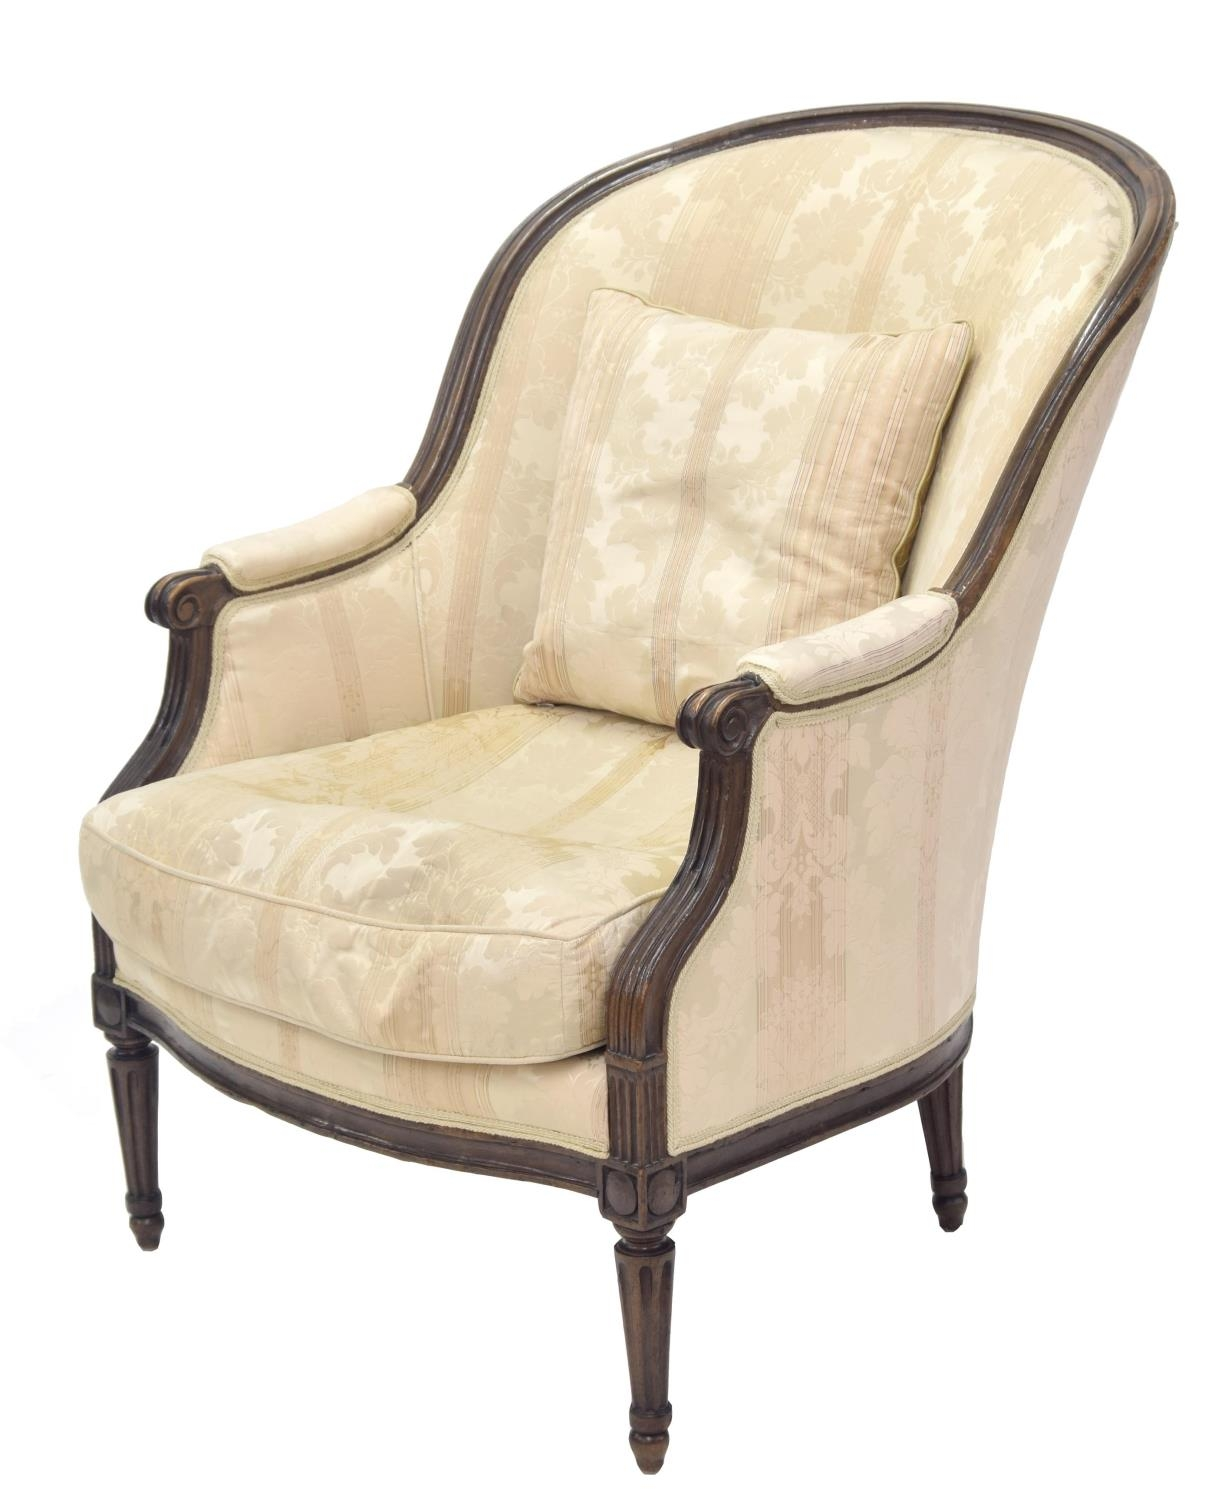 Late 18th century French walnut framed armchair, with damask upholstery with scrolling arms and